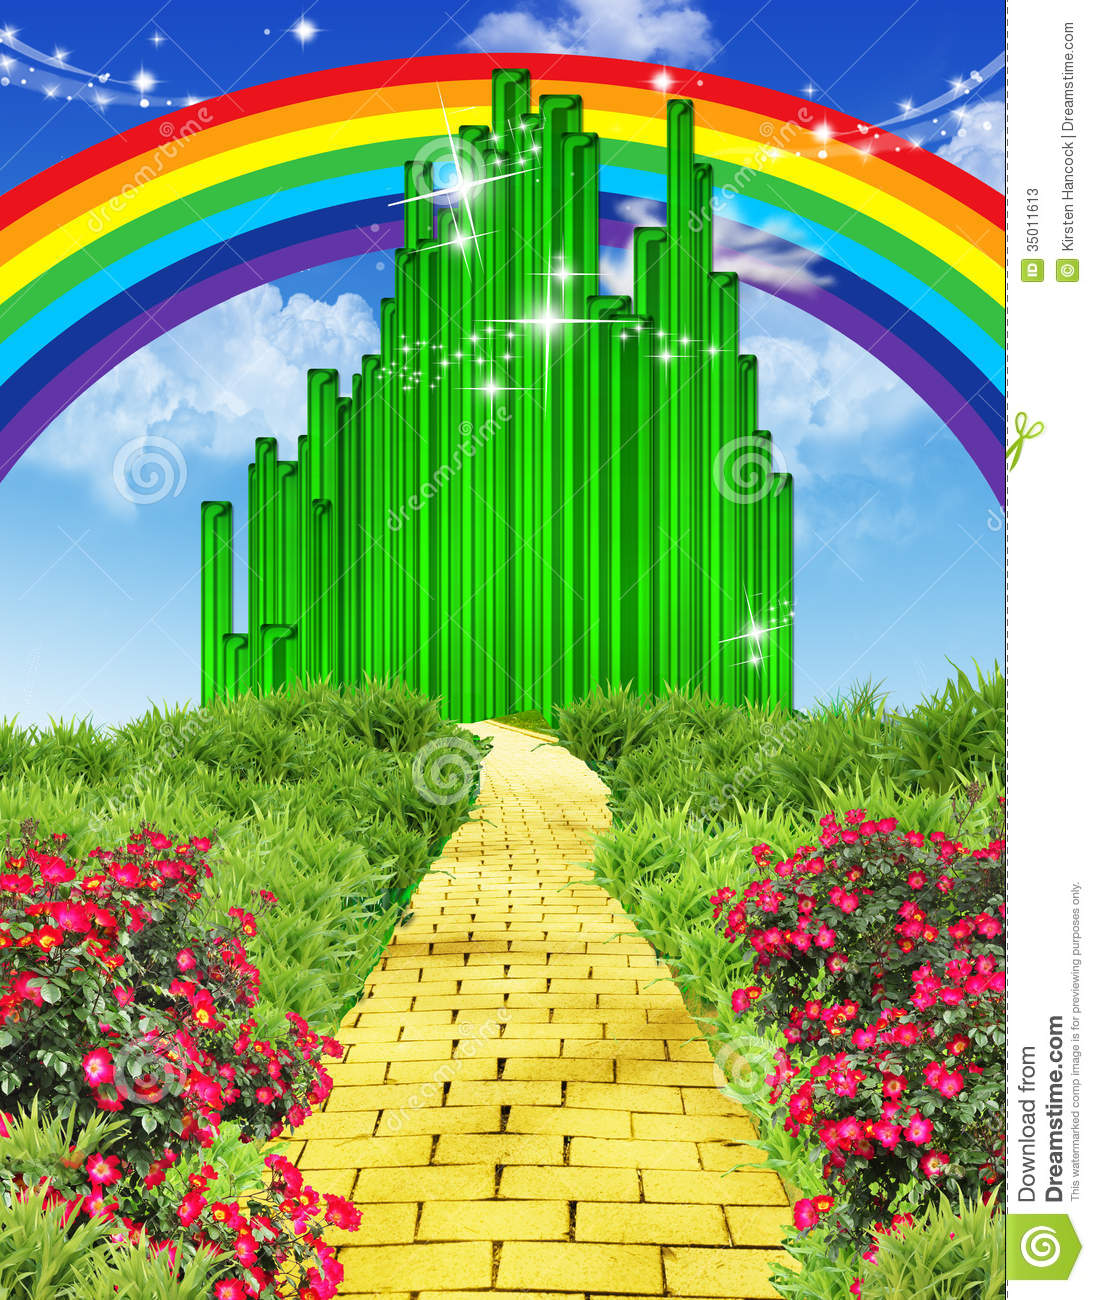 Free Yellow Brick Road Clipart.